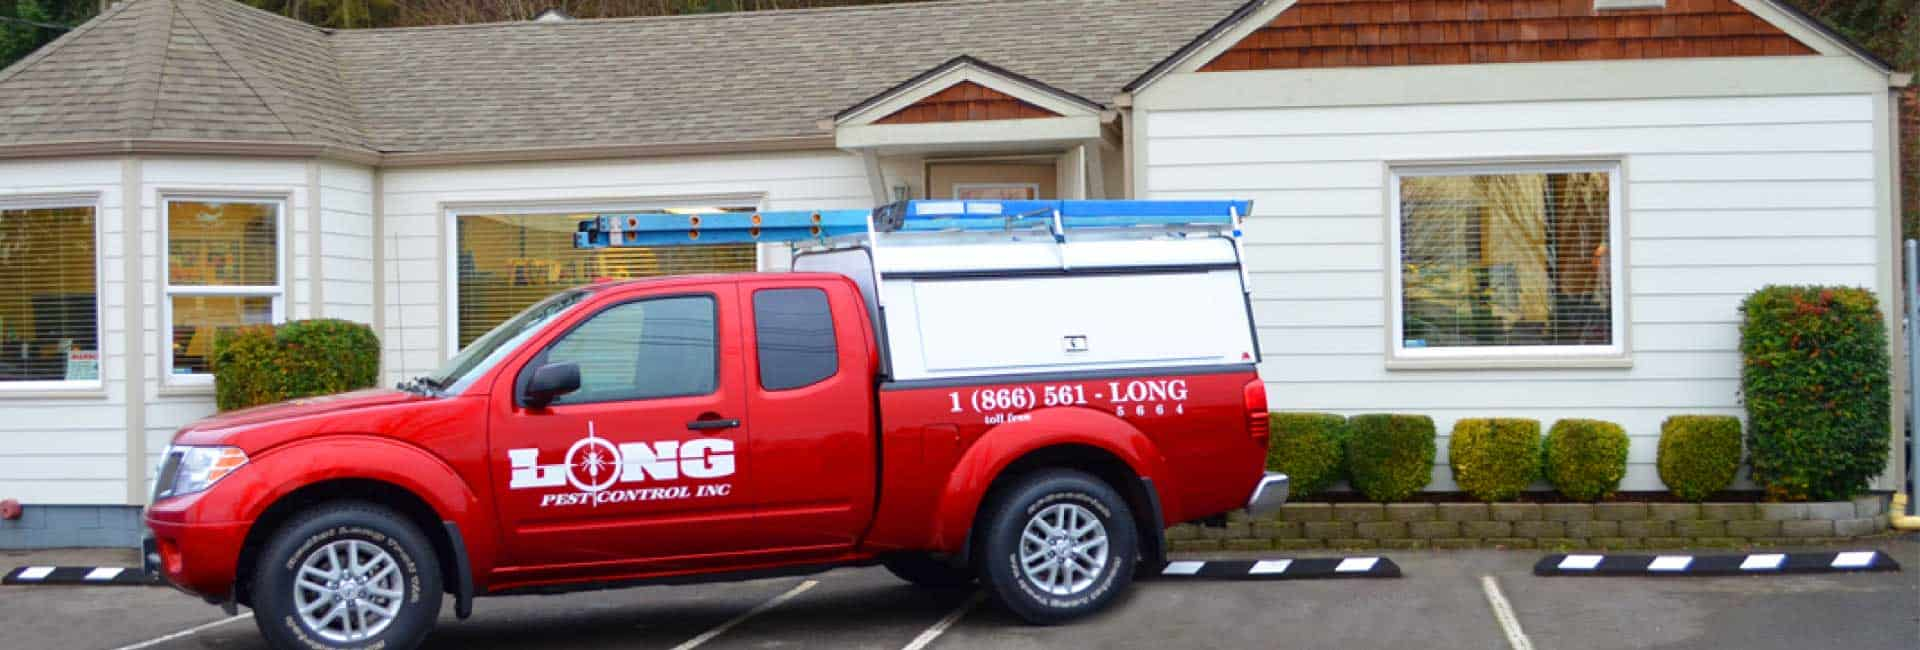 pest control in Washington state